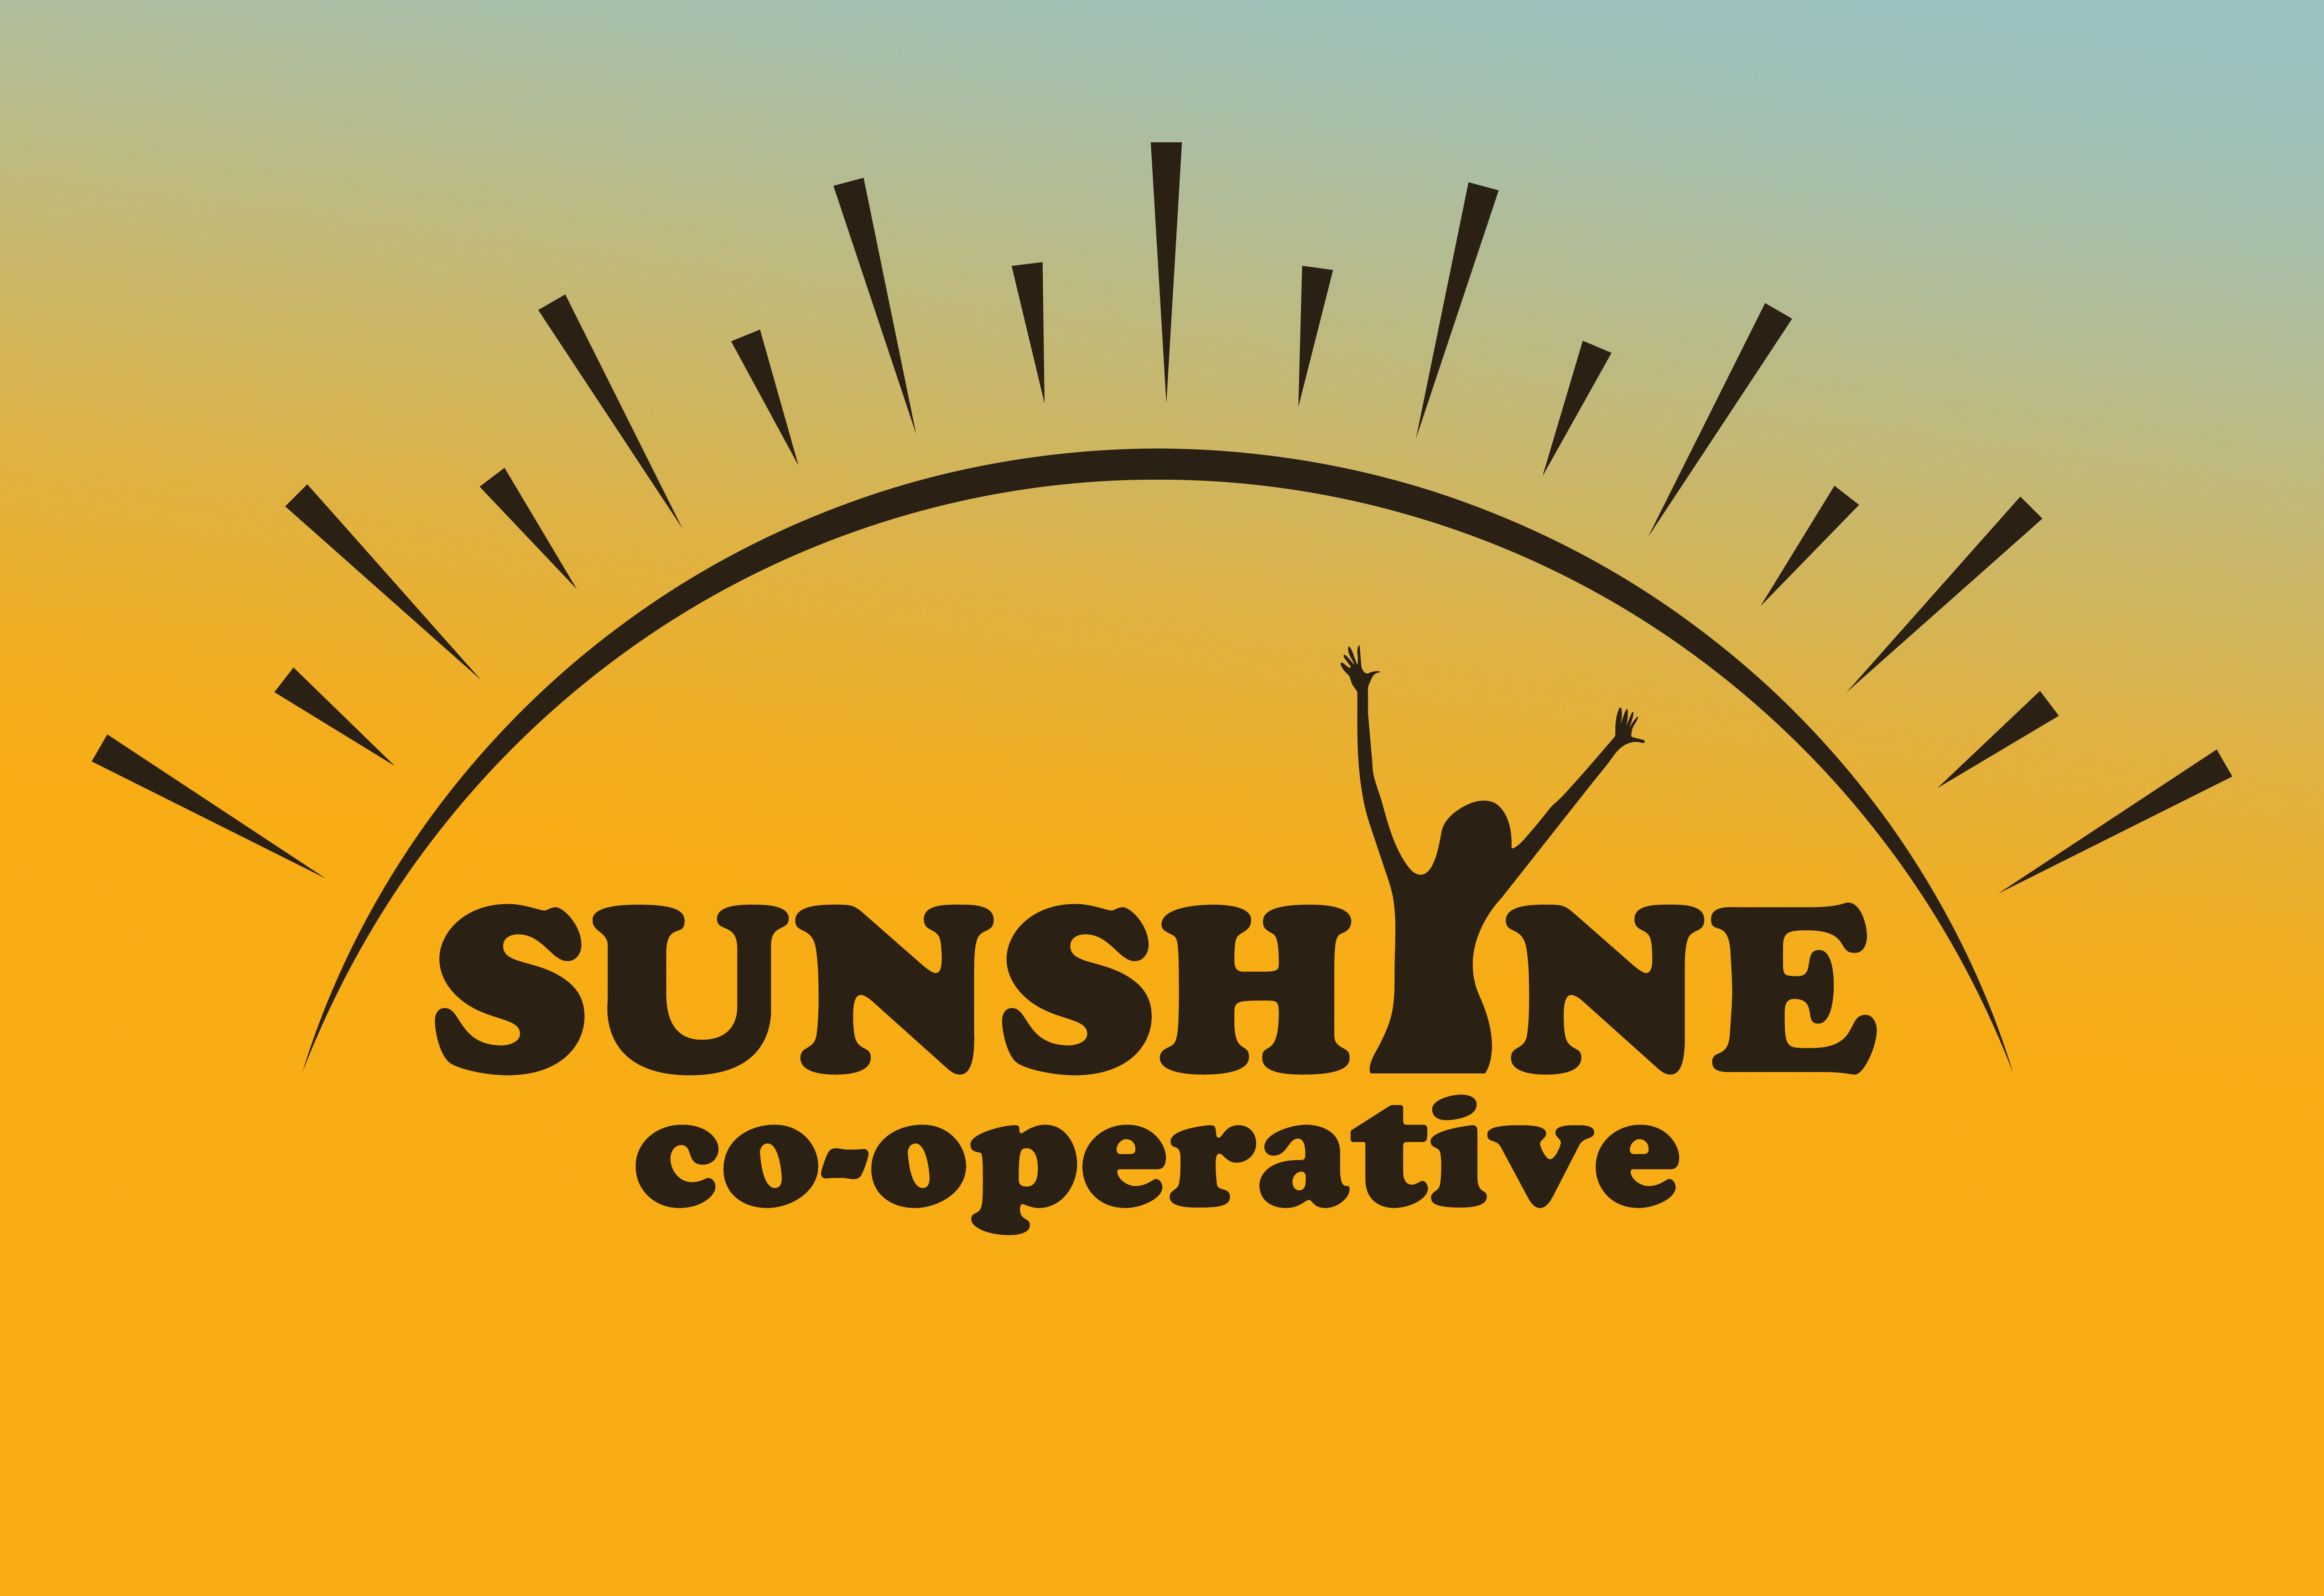 Sunshine Co-operative